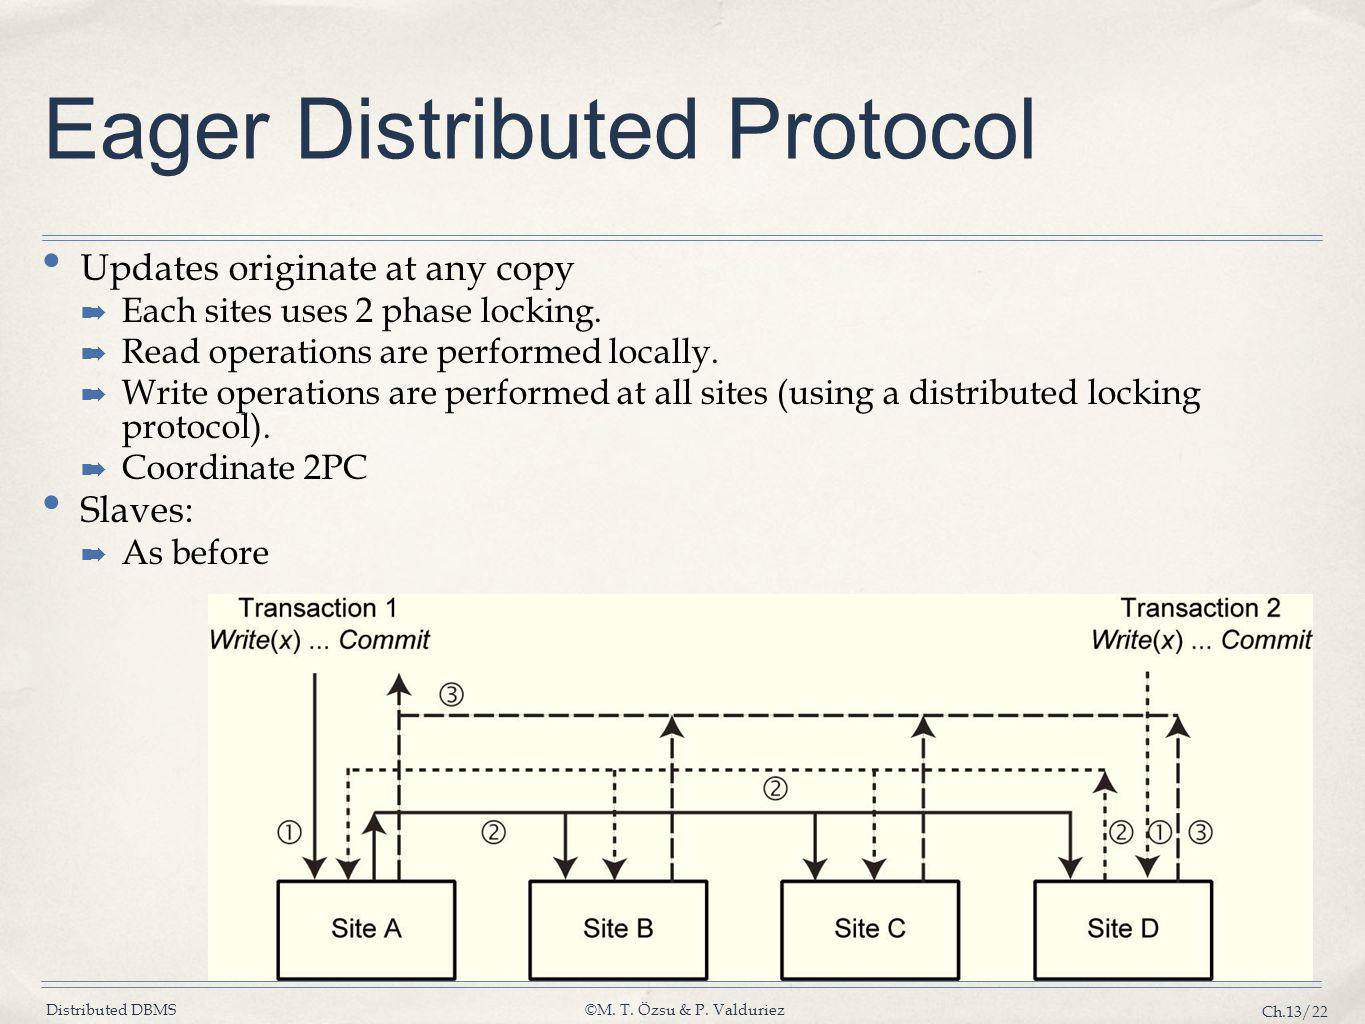 Eager Distributed Protocol